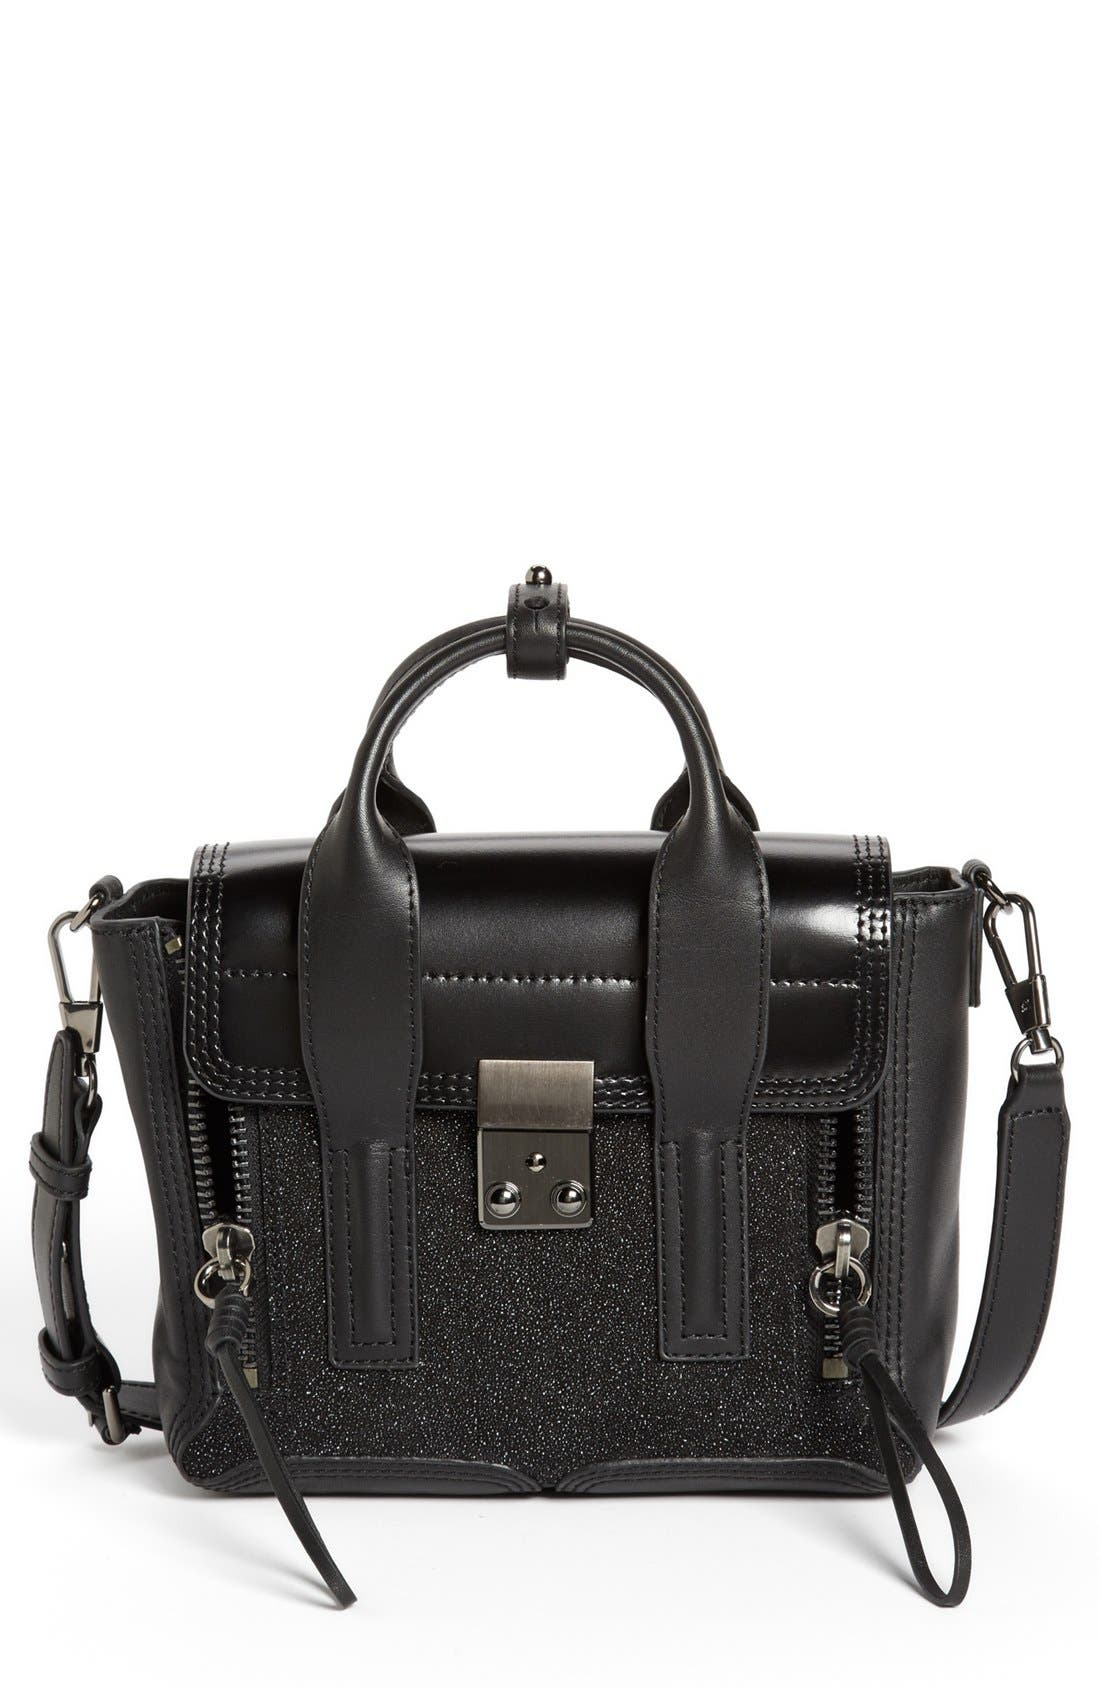 Alternate Image 1 Selected - 3.1 Phillip Lim 'Pashli Mini' Glitter Satchel